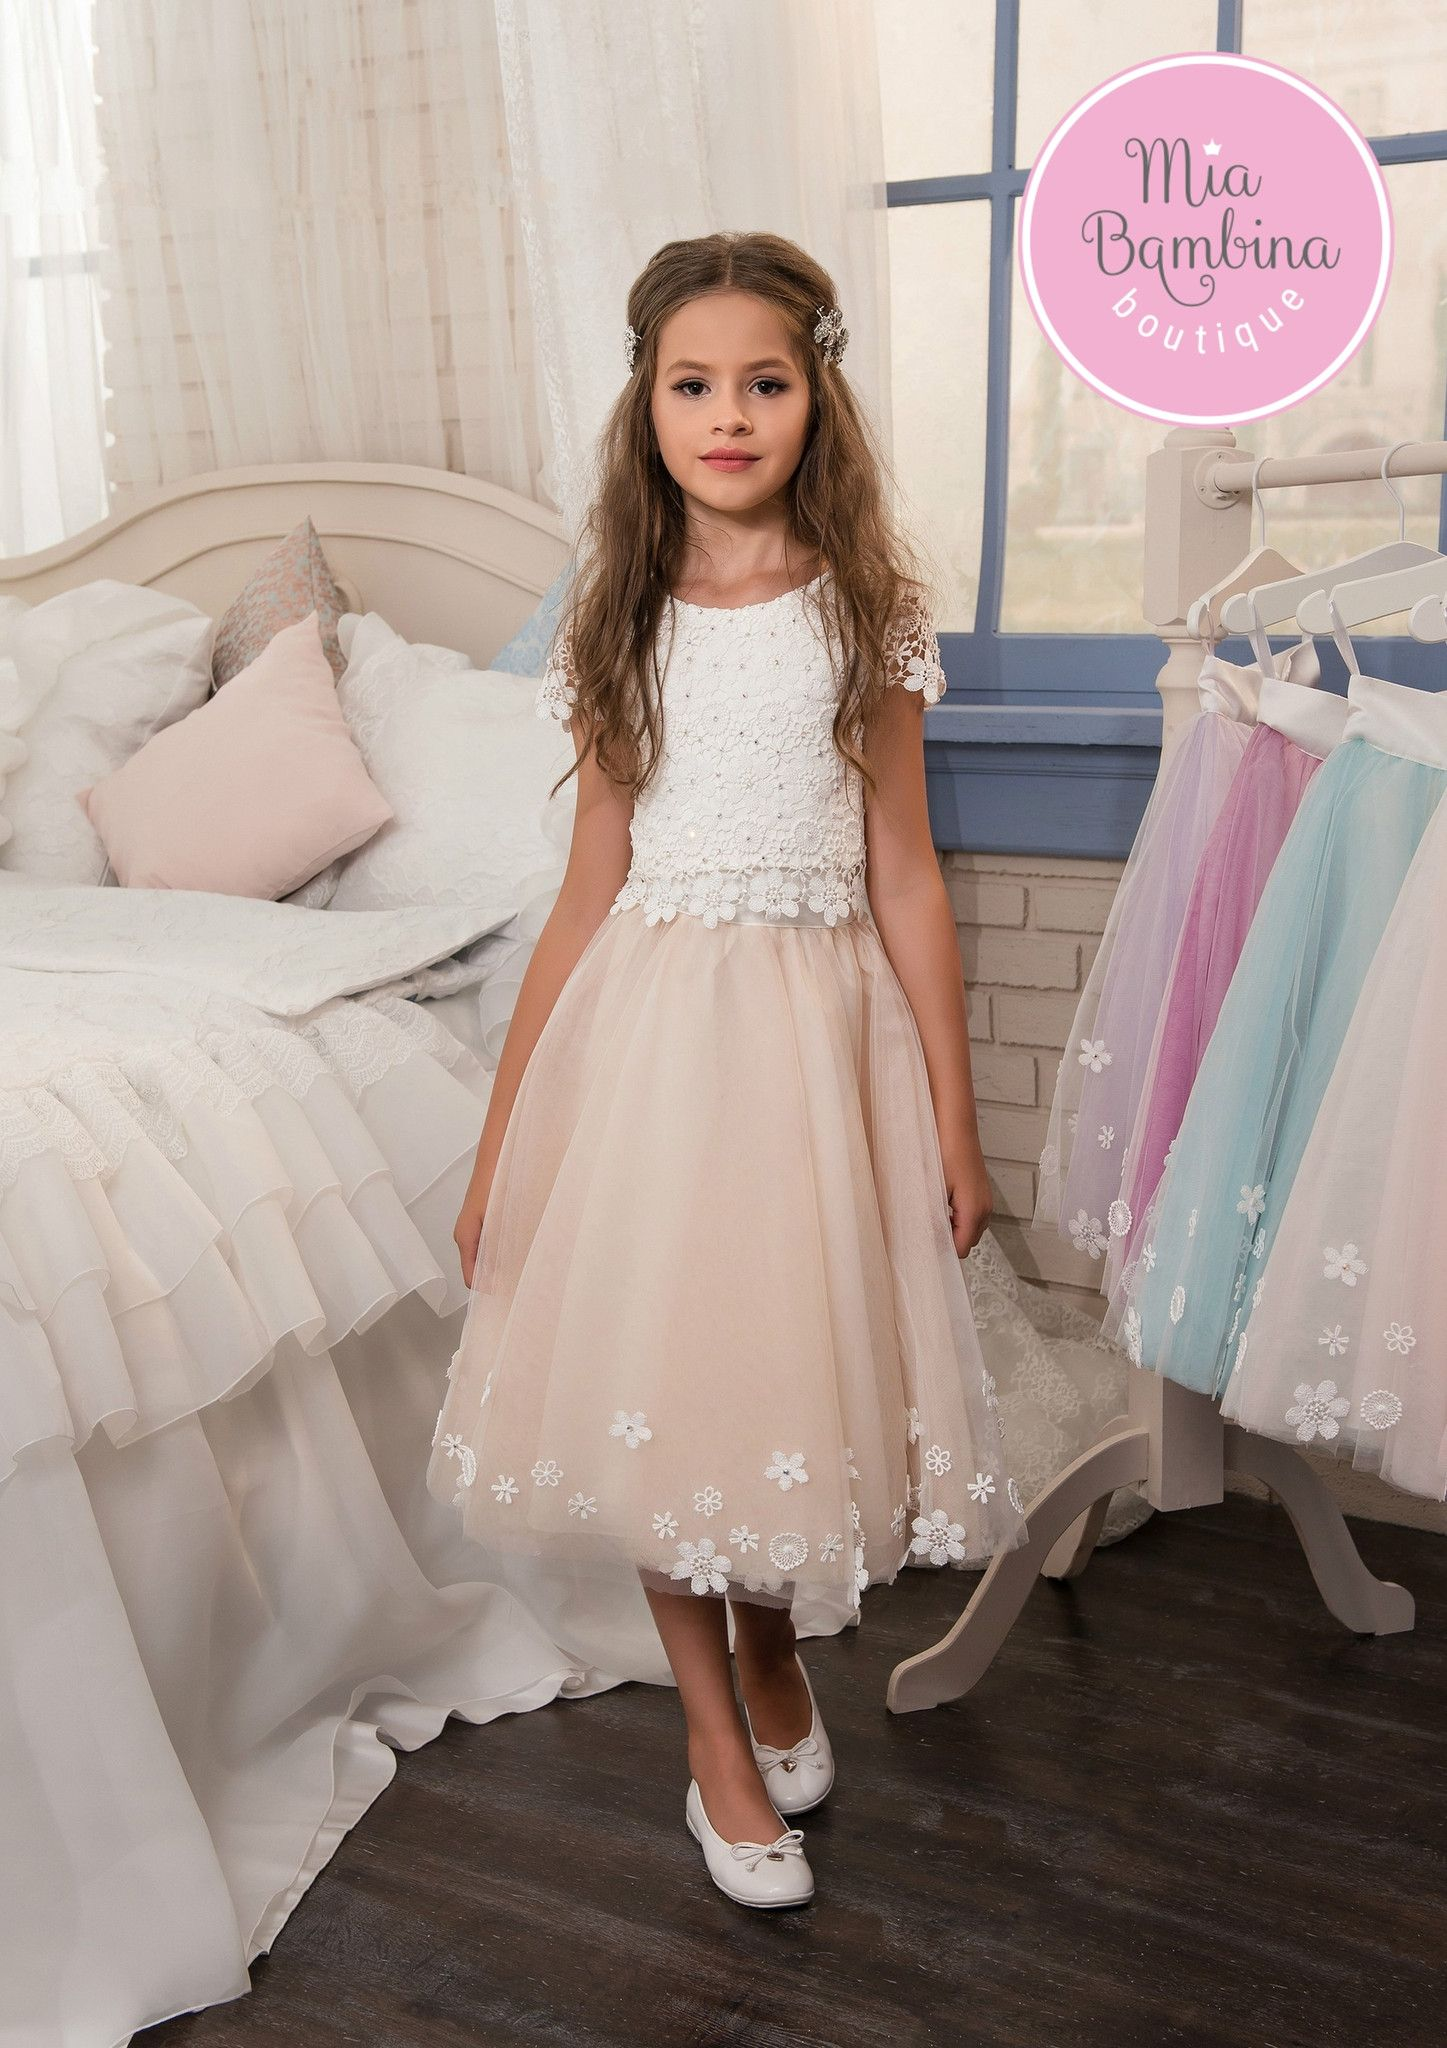 1caaee026 Adorable 2-piece outfit for flower girls features a short sleeved lace over  satin top